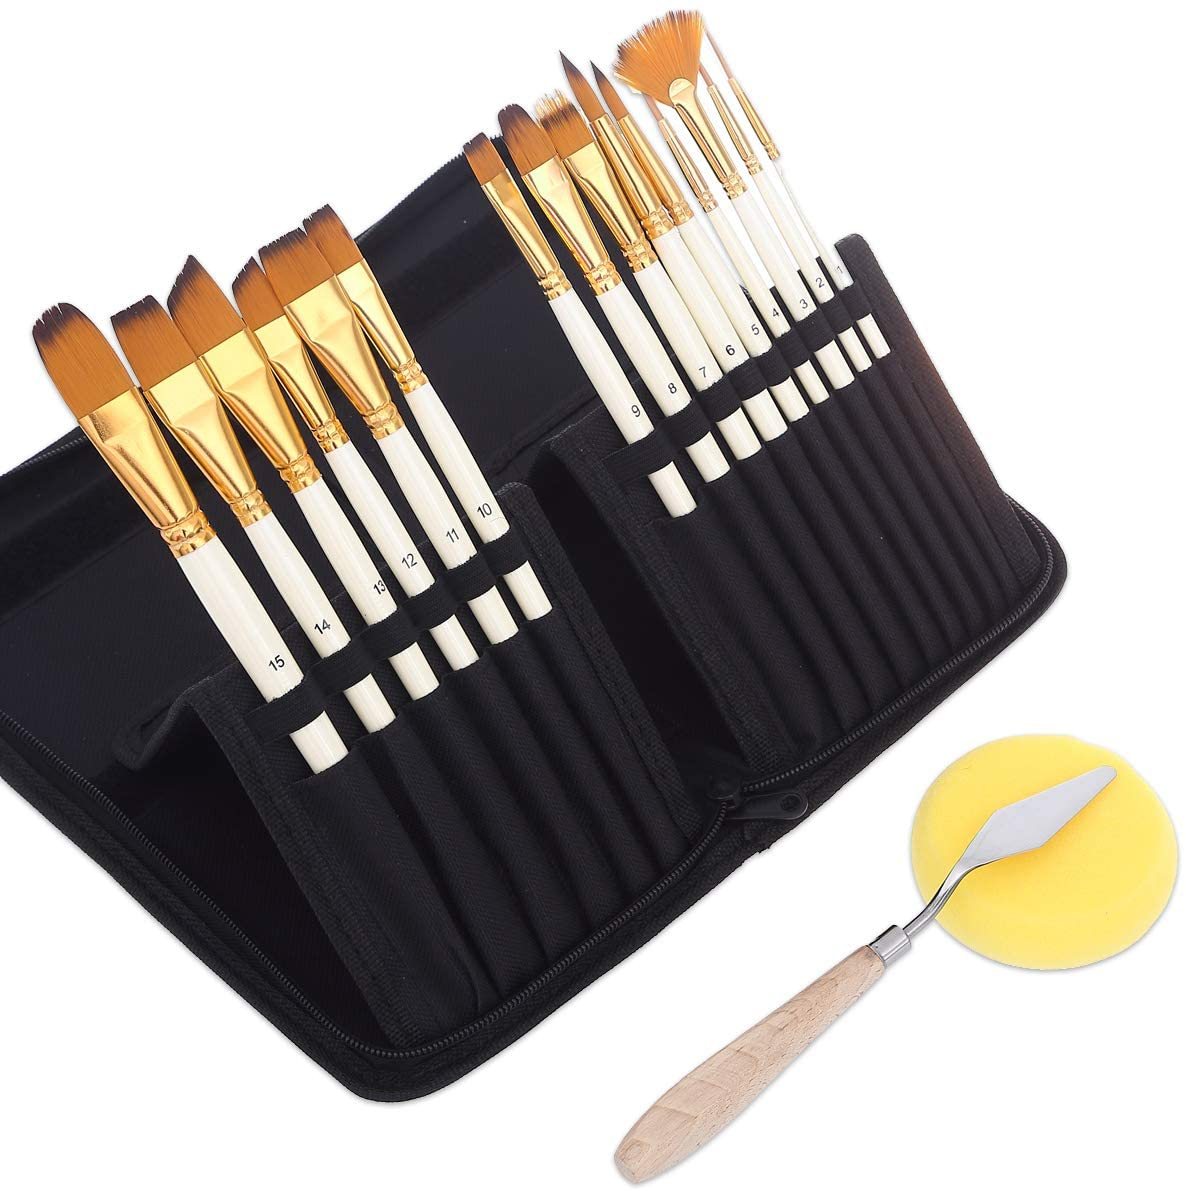 Art Paint Brushes Set for for Watercolor, Acrylic, Oil- 15 Different Sizes for Artists, Adults & Kids, Contains Premium Nylon Hairs-Free Art Knife and Sponge White